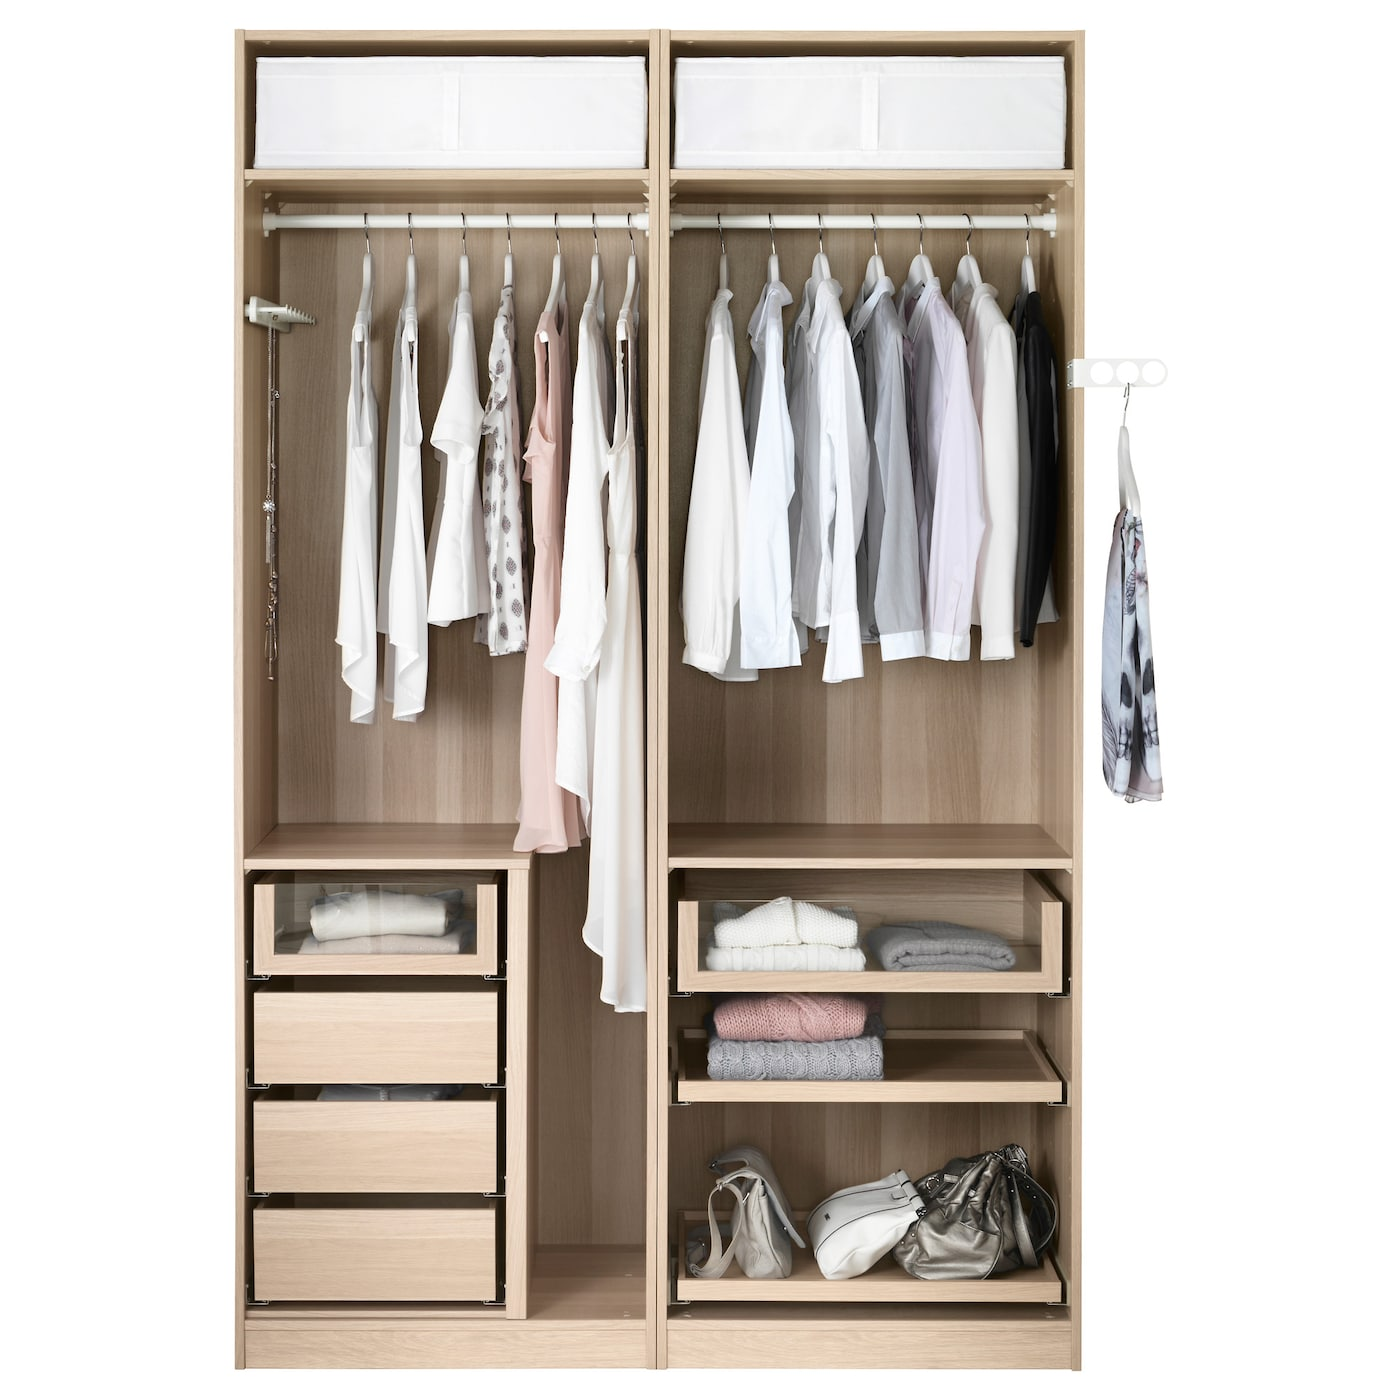 Pax wardrobe white stained oak effect mehamn white 150x66x236 cm ikea - Accessoire dressing ikea ...